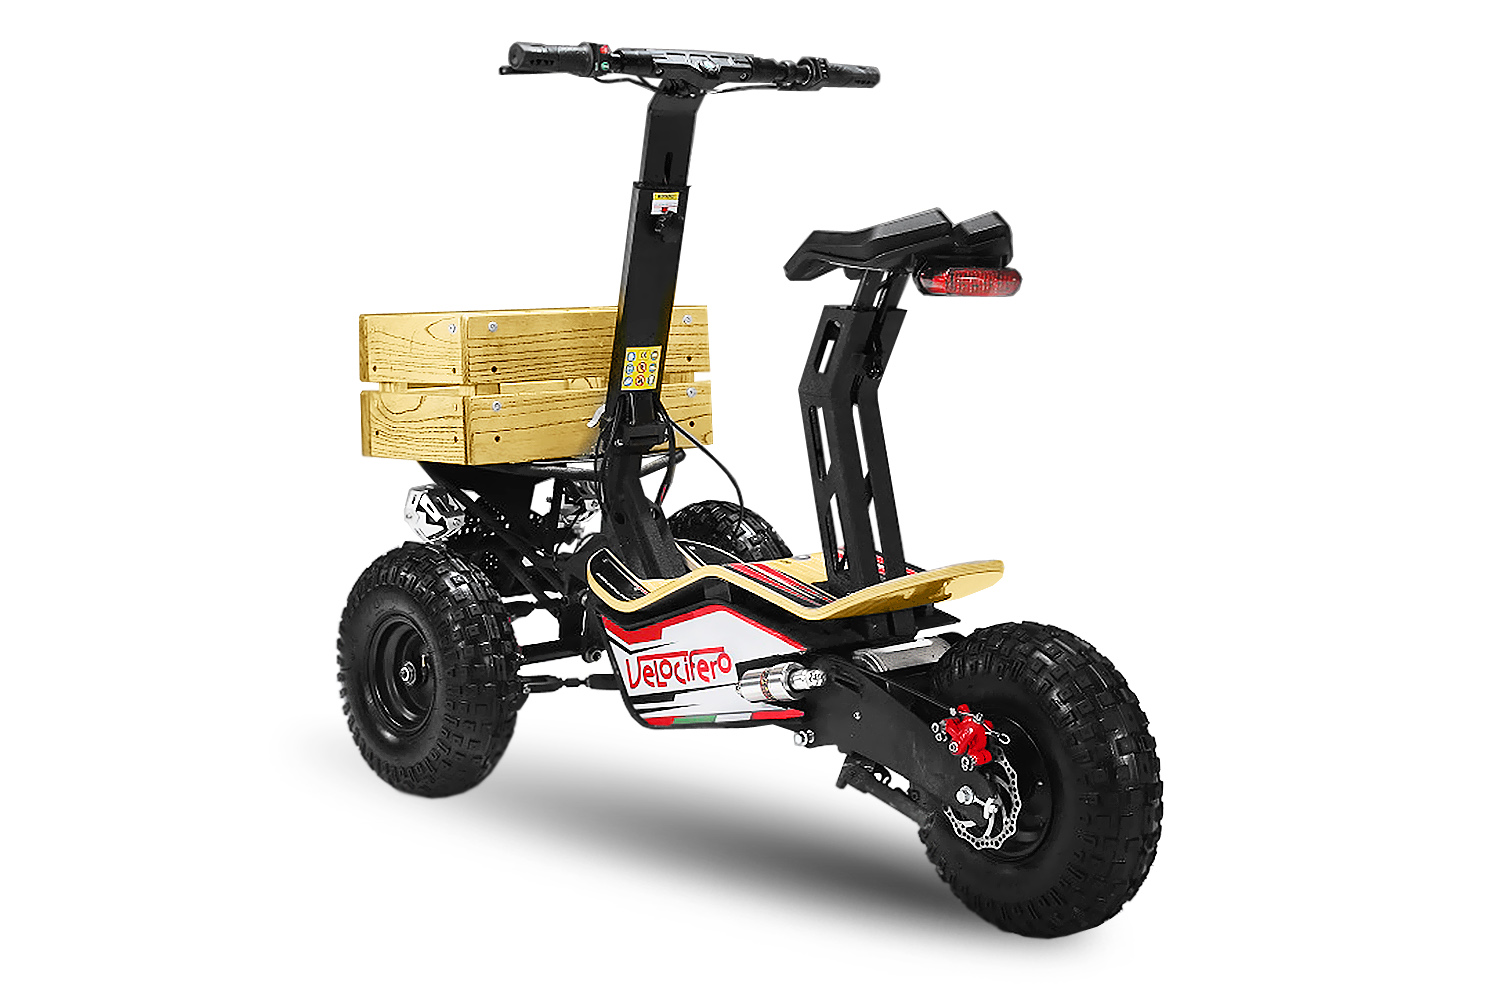 madtruck elektro scooter 2000w 60v 6 zoll elektro quad shop. Black Bedroom Furniture Sets. Home Design Ideas